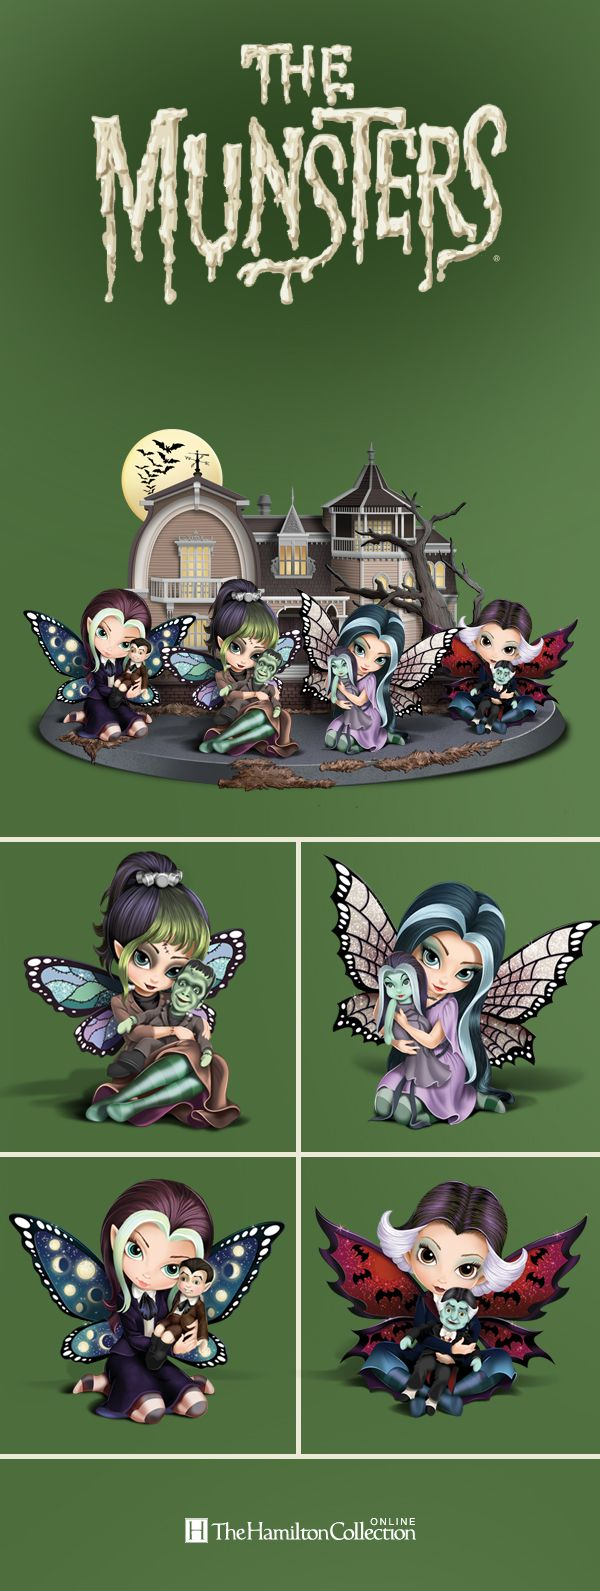 All your favorite Munsters are here: Herman, Lily, Grandpa and Eddie! Even better, they're joined by fabulous and fun-loving Jasmine Becket-Griffith fairies! With signature bright eyes, colorfully streaked hair and vibrant wings, these fairies will make your Halloween spooktacular!